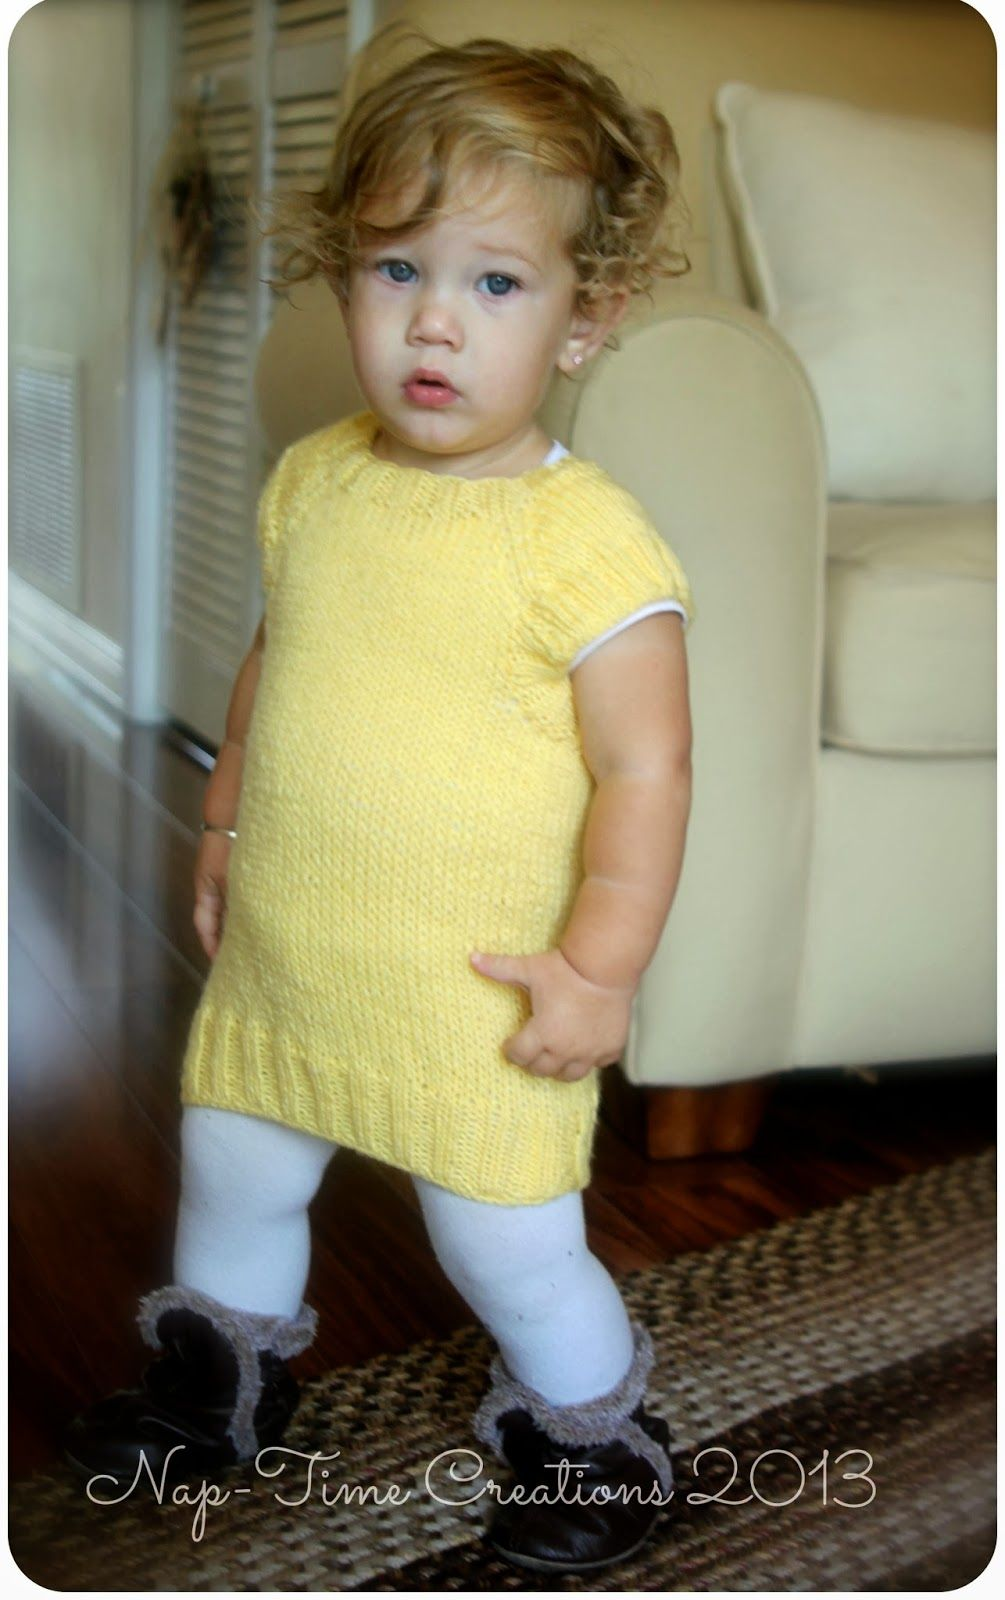 Baby Sweaters Free Knitting Patterns - Nap-time Creations | más ...